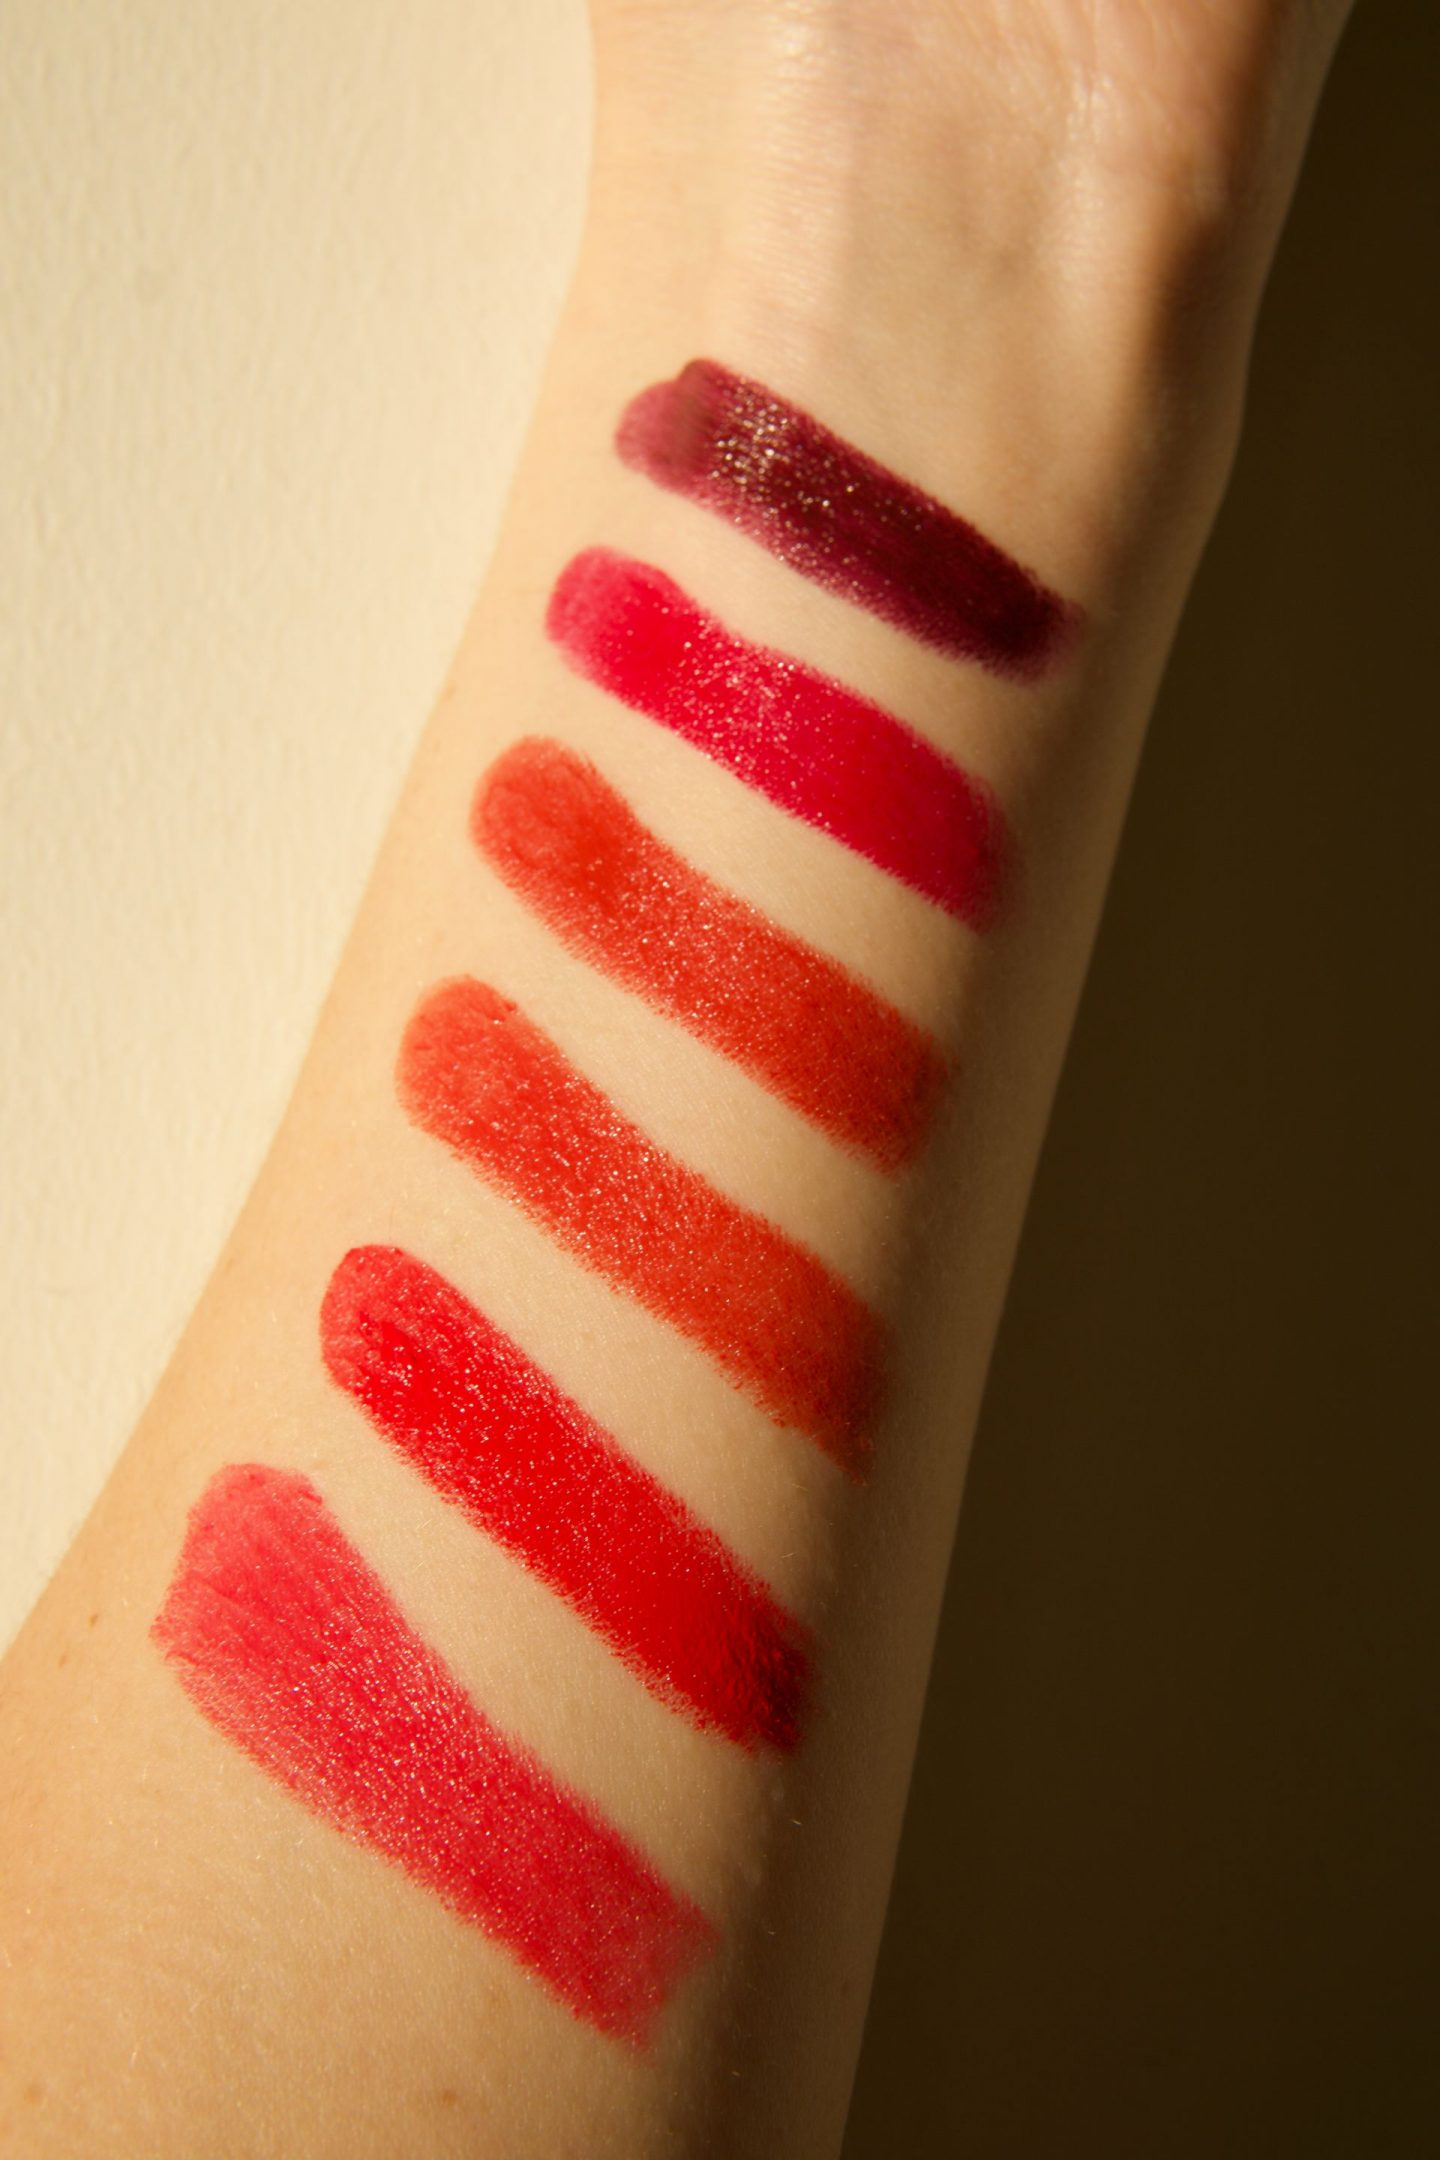 Bobbi Brown Luxe Shine Intense Lipstick Swatch